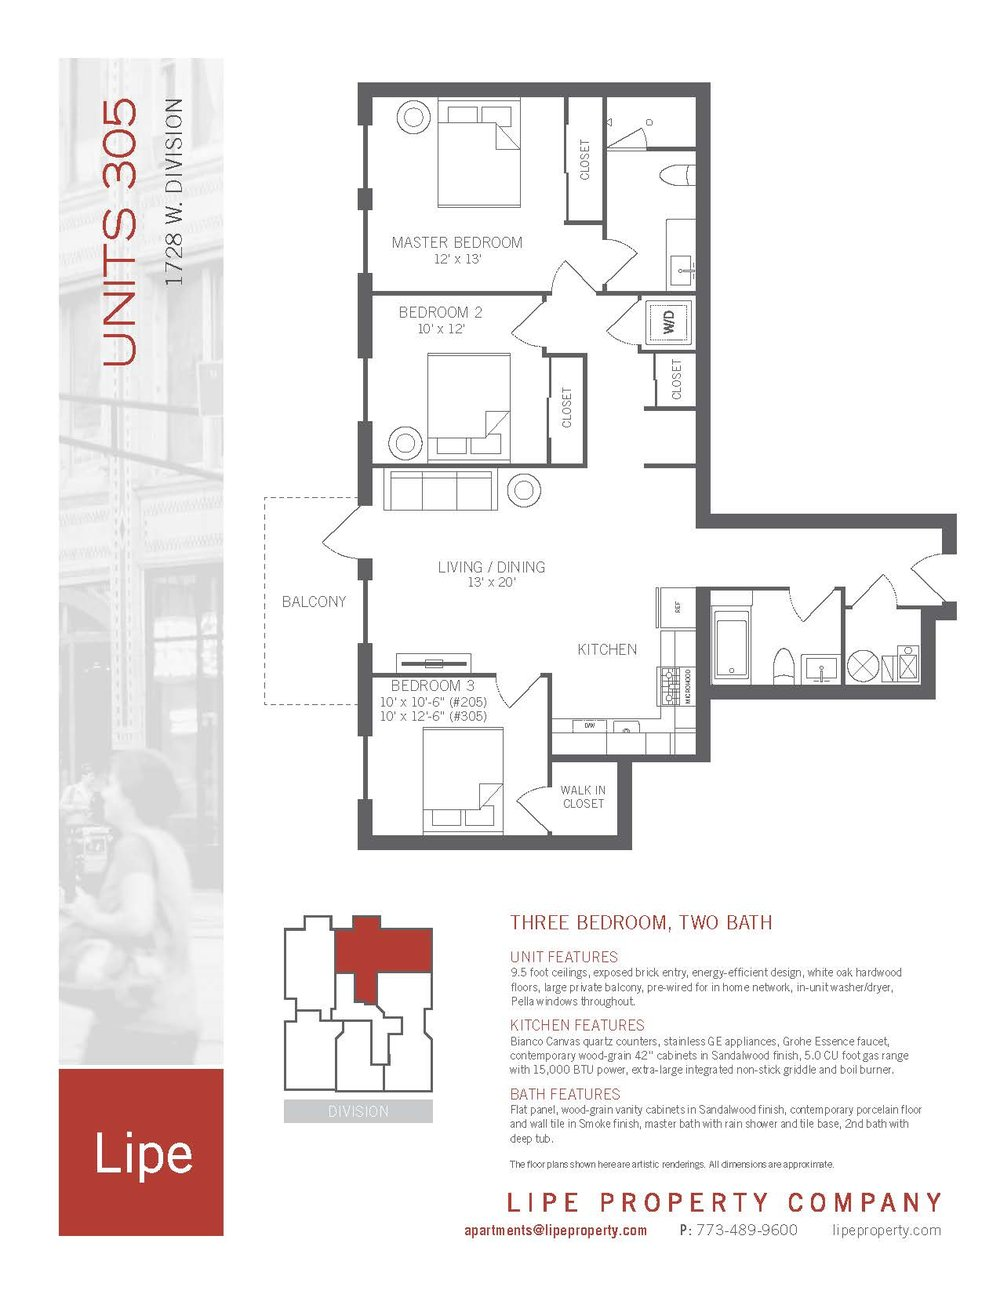 1728-West-Division-305-Floorplan-Chicago-apartment-for-rent.jpg